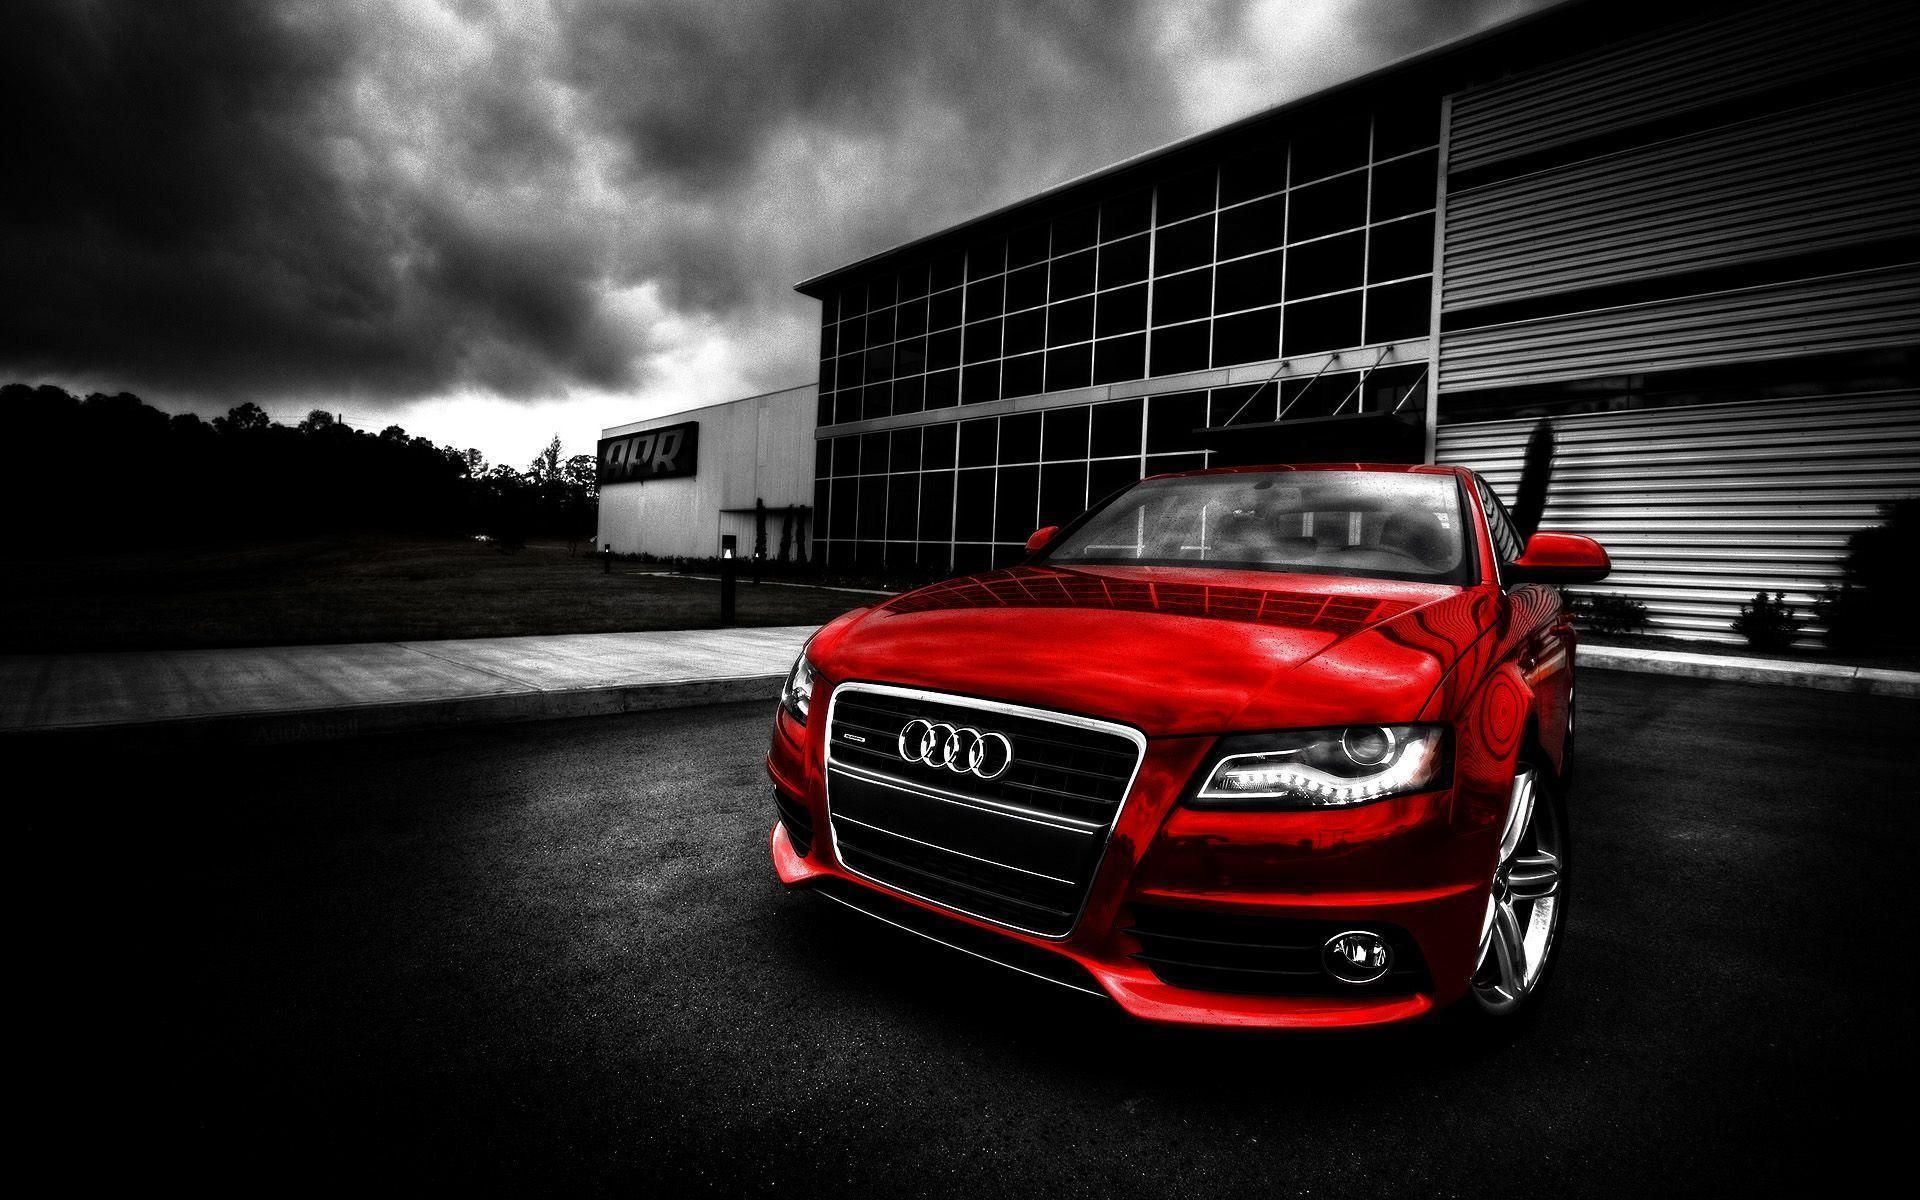 Audi A4 Wallpapers 2020 In 2020 Audi A4 Car Wallpapers Audi Cars